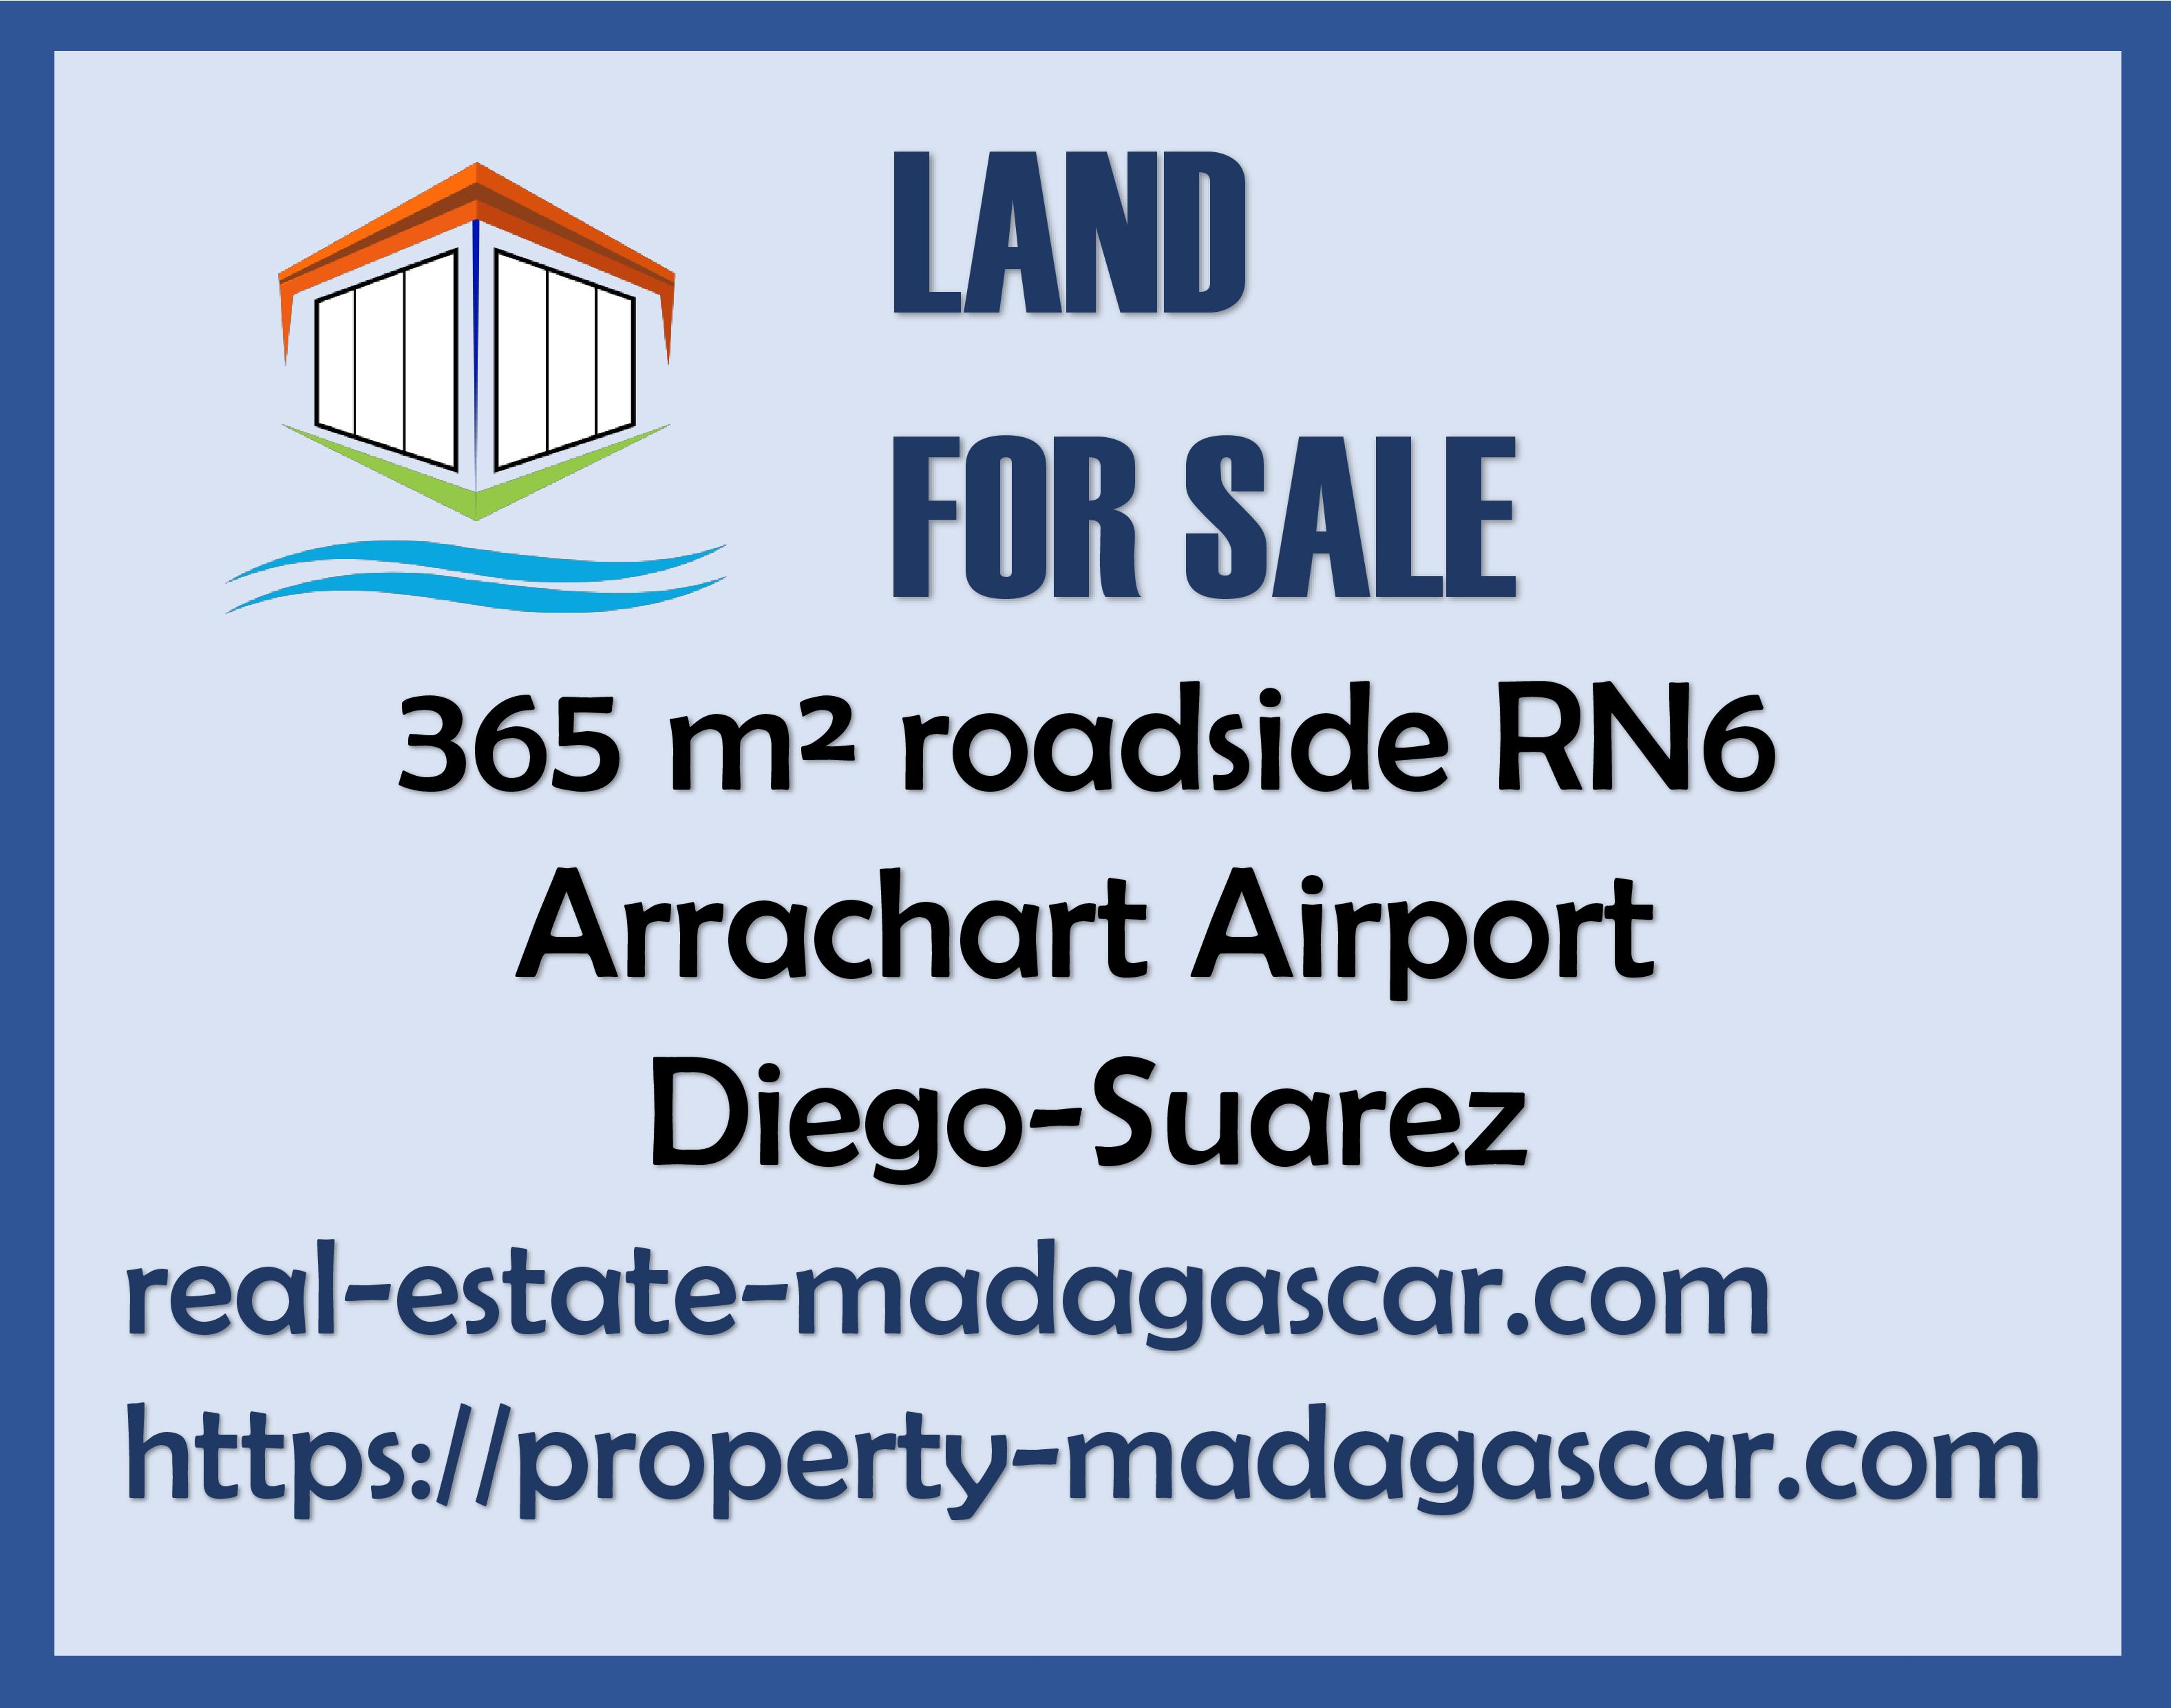 land-for-sale-365-m²arrachart.jpg